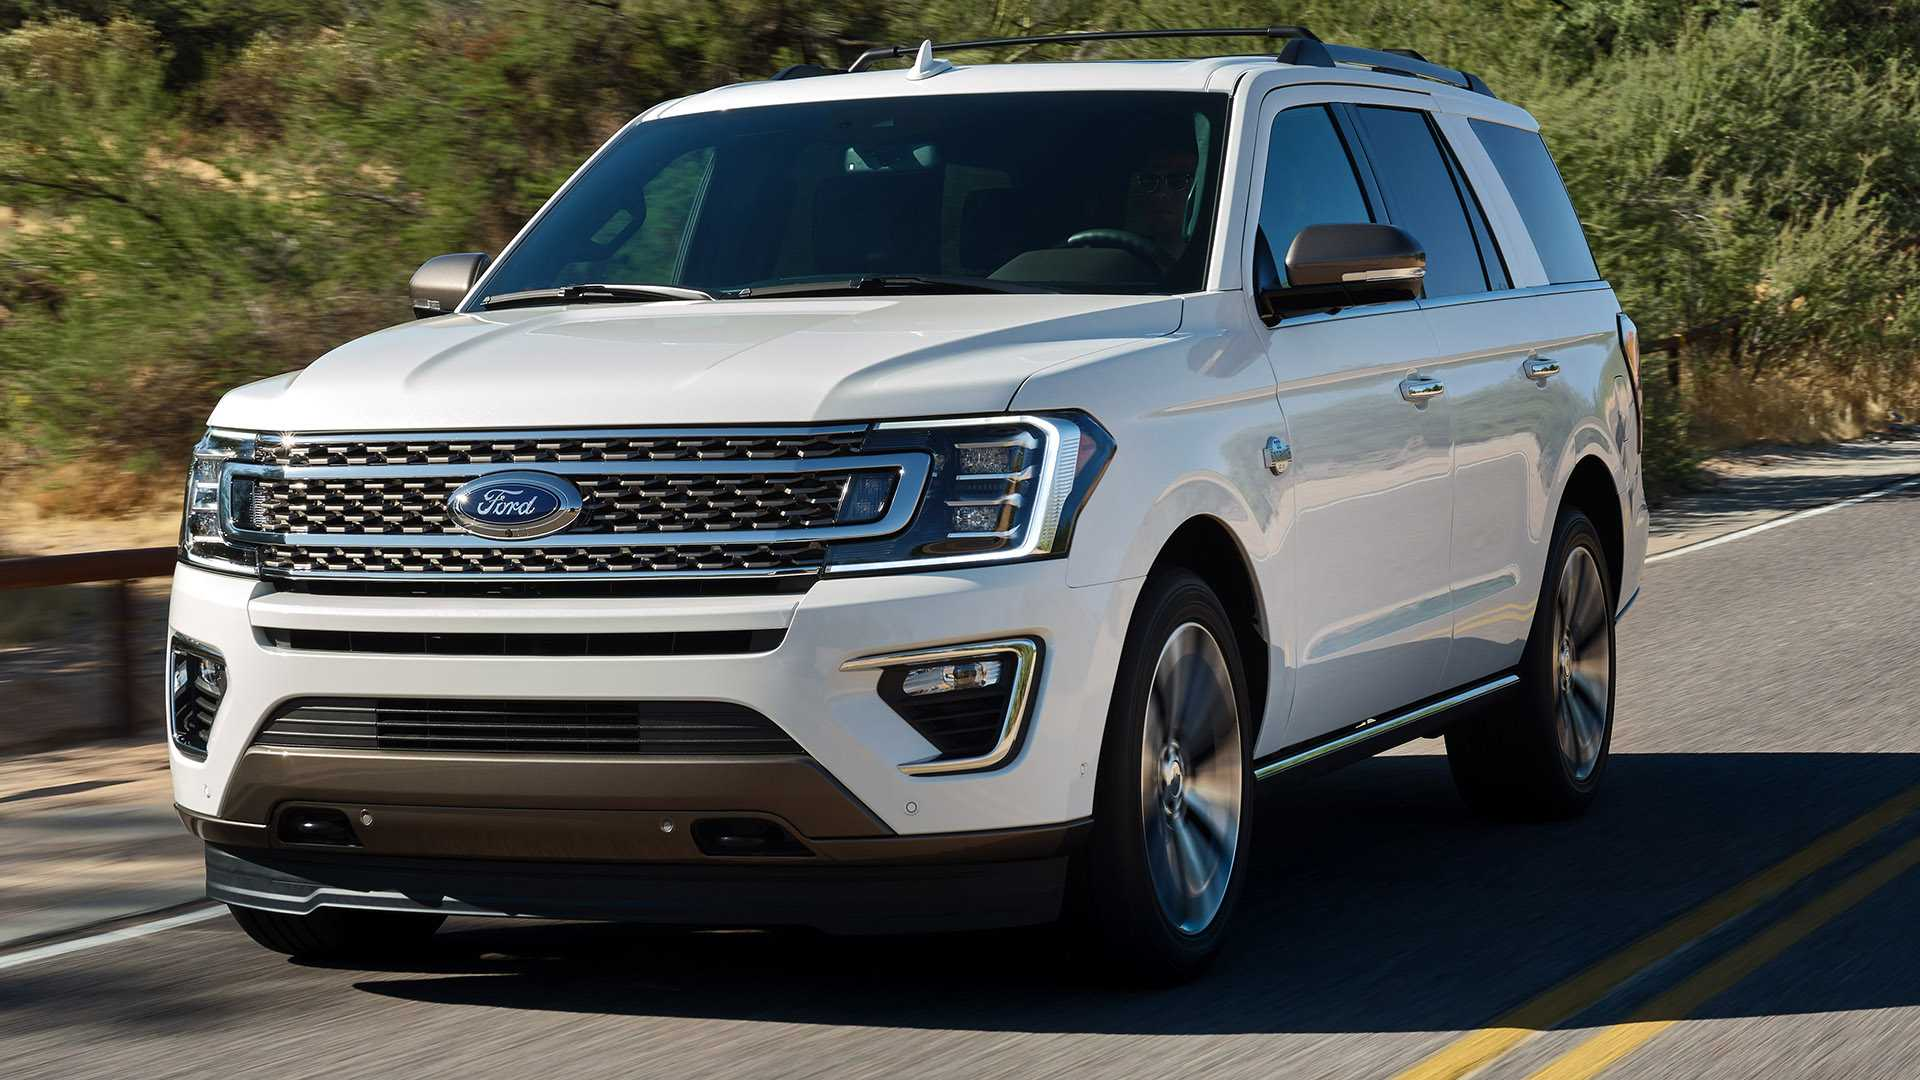 2020 Ford Expedition Spy Shoot